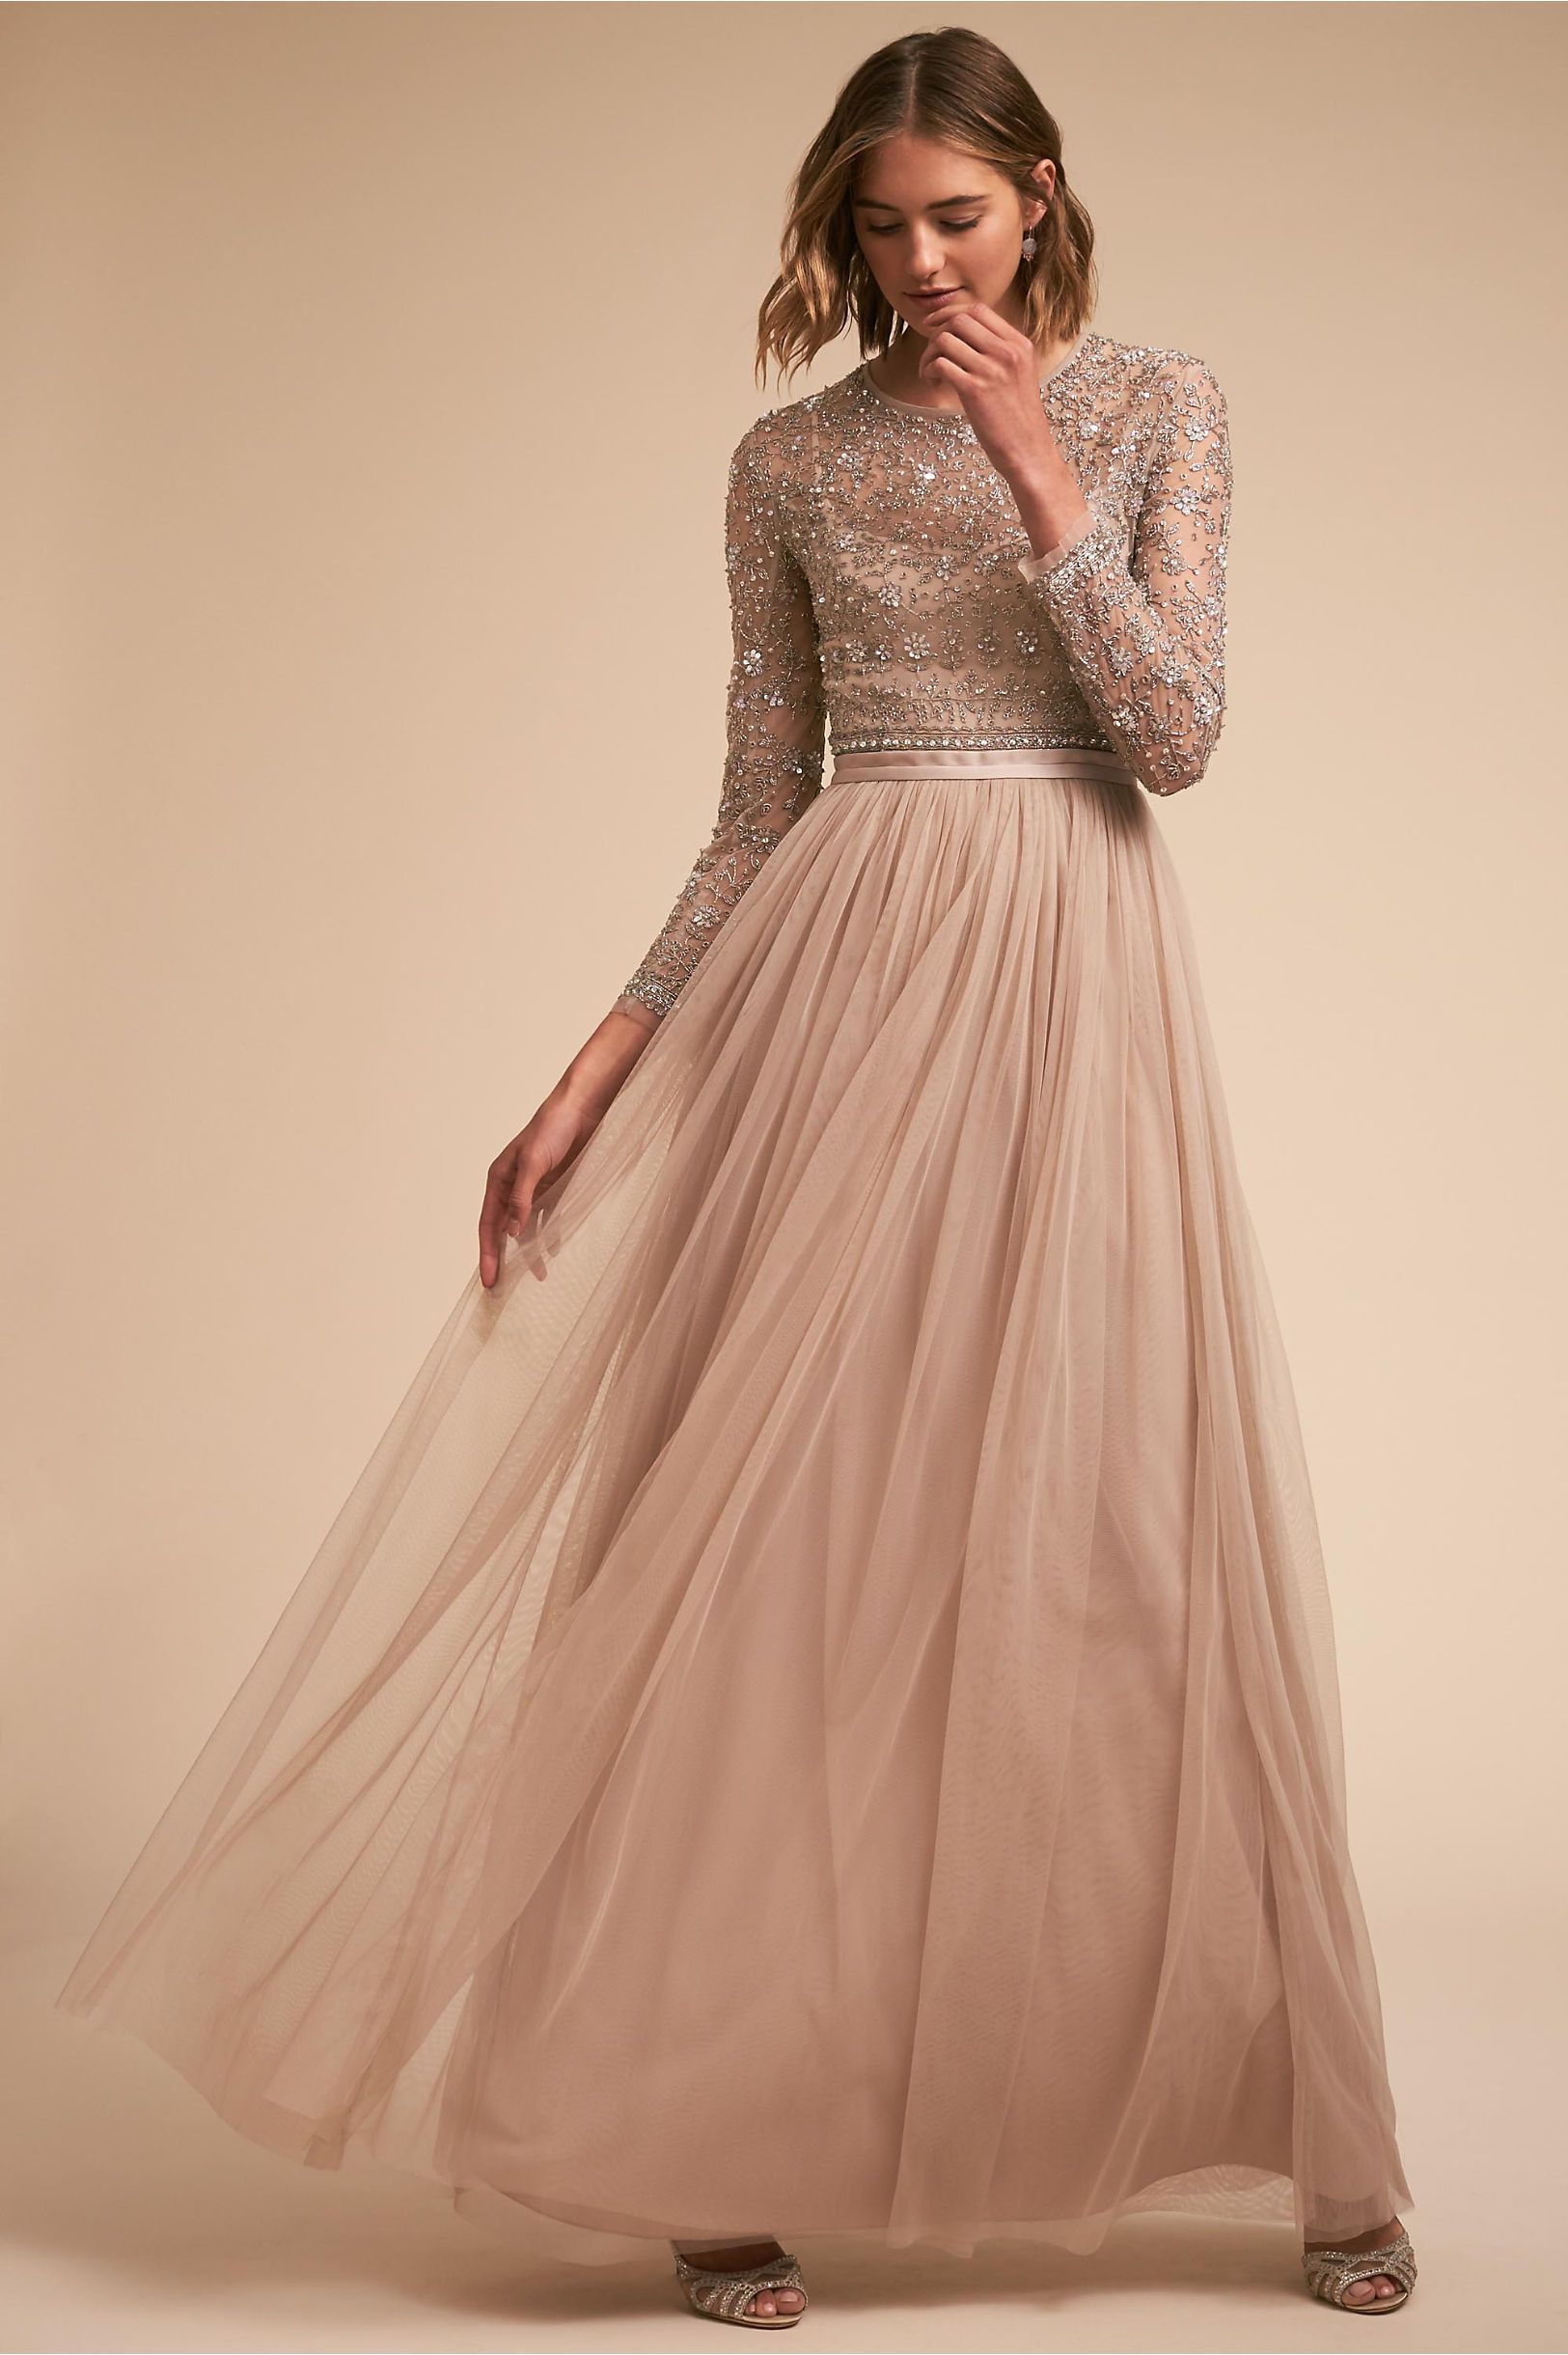 0a0bcfe1eb7b Miramar Dress | Beautiful ideas for someday... | Tulle skirt dress ...